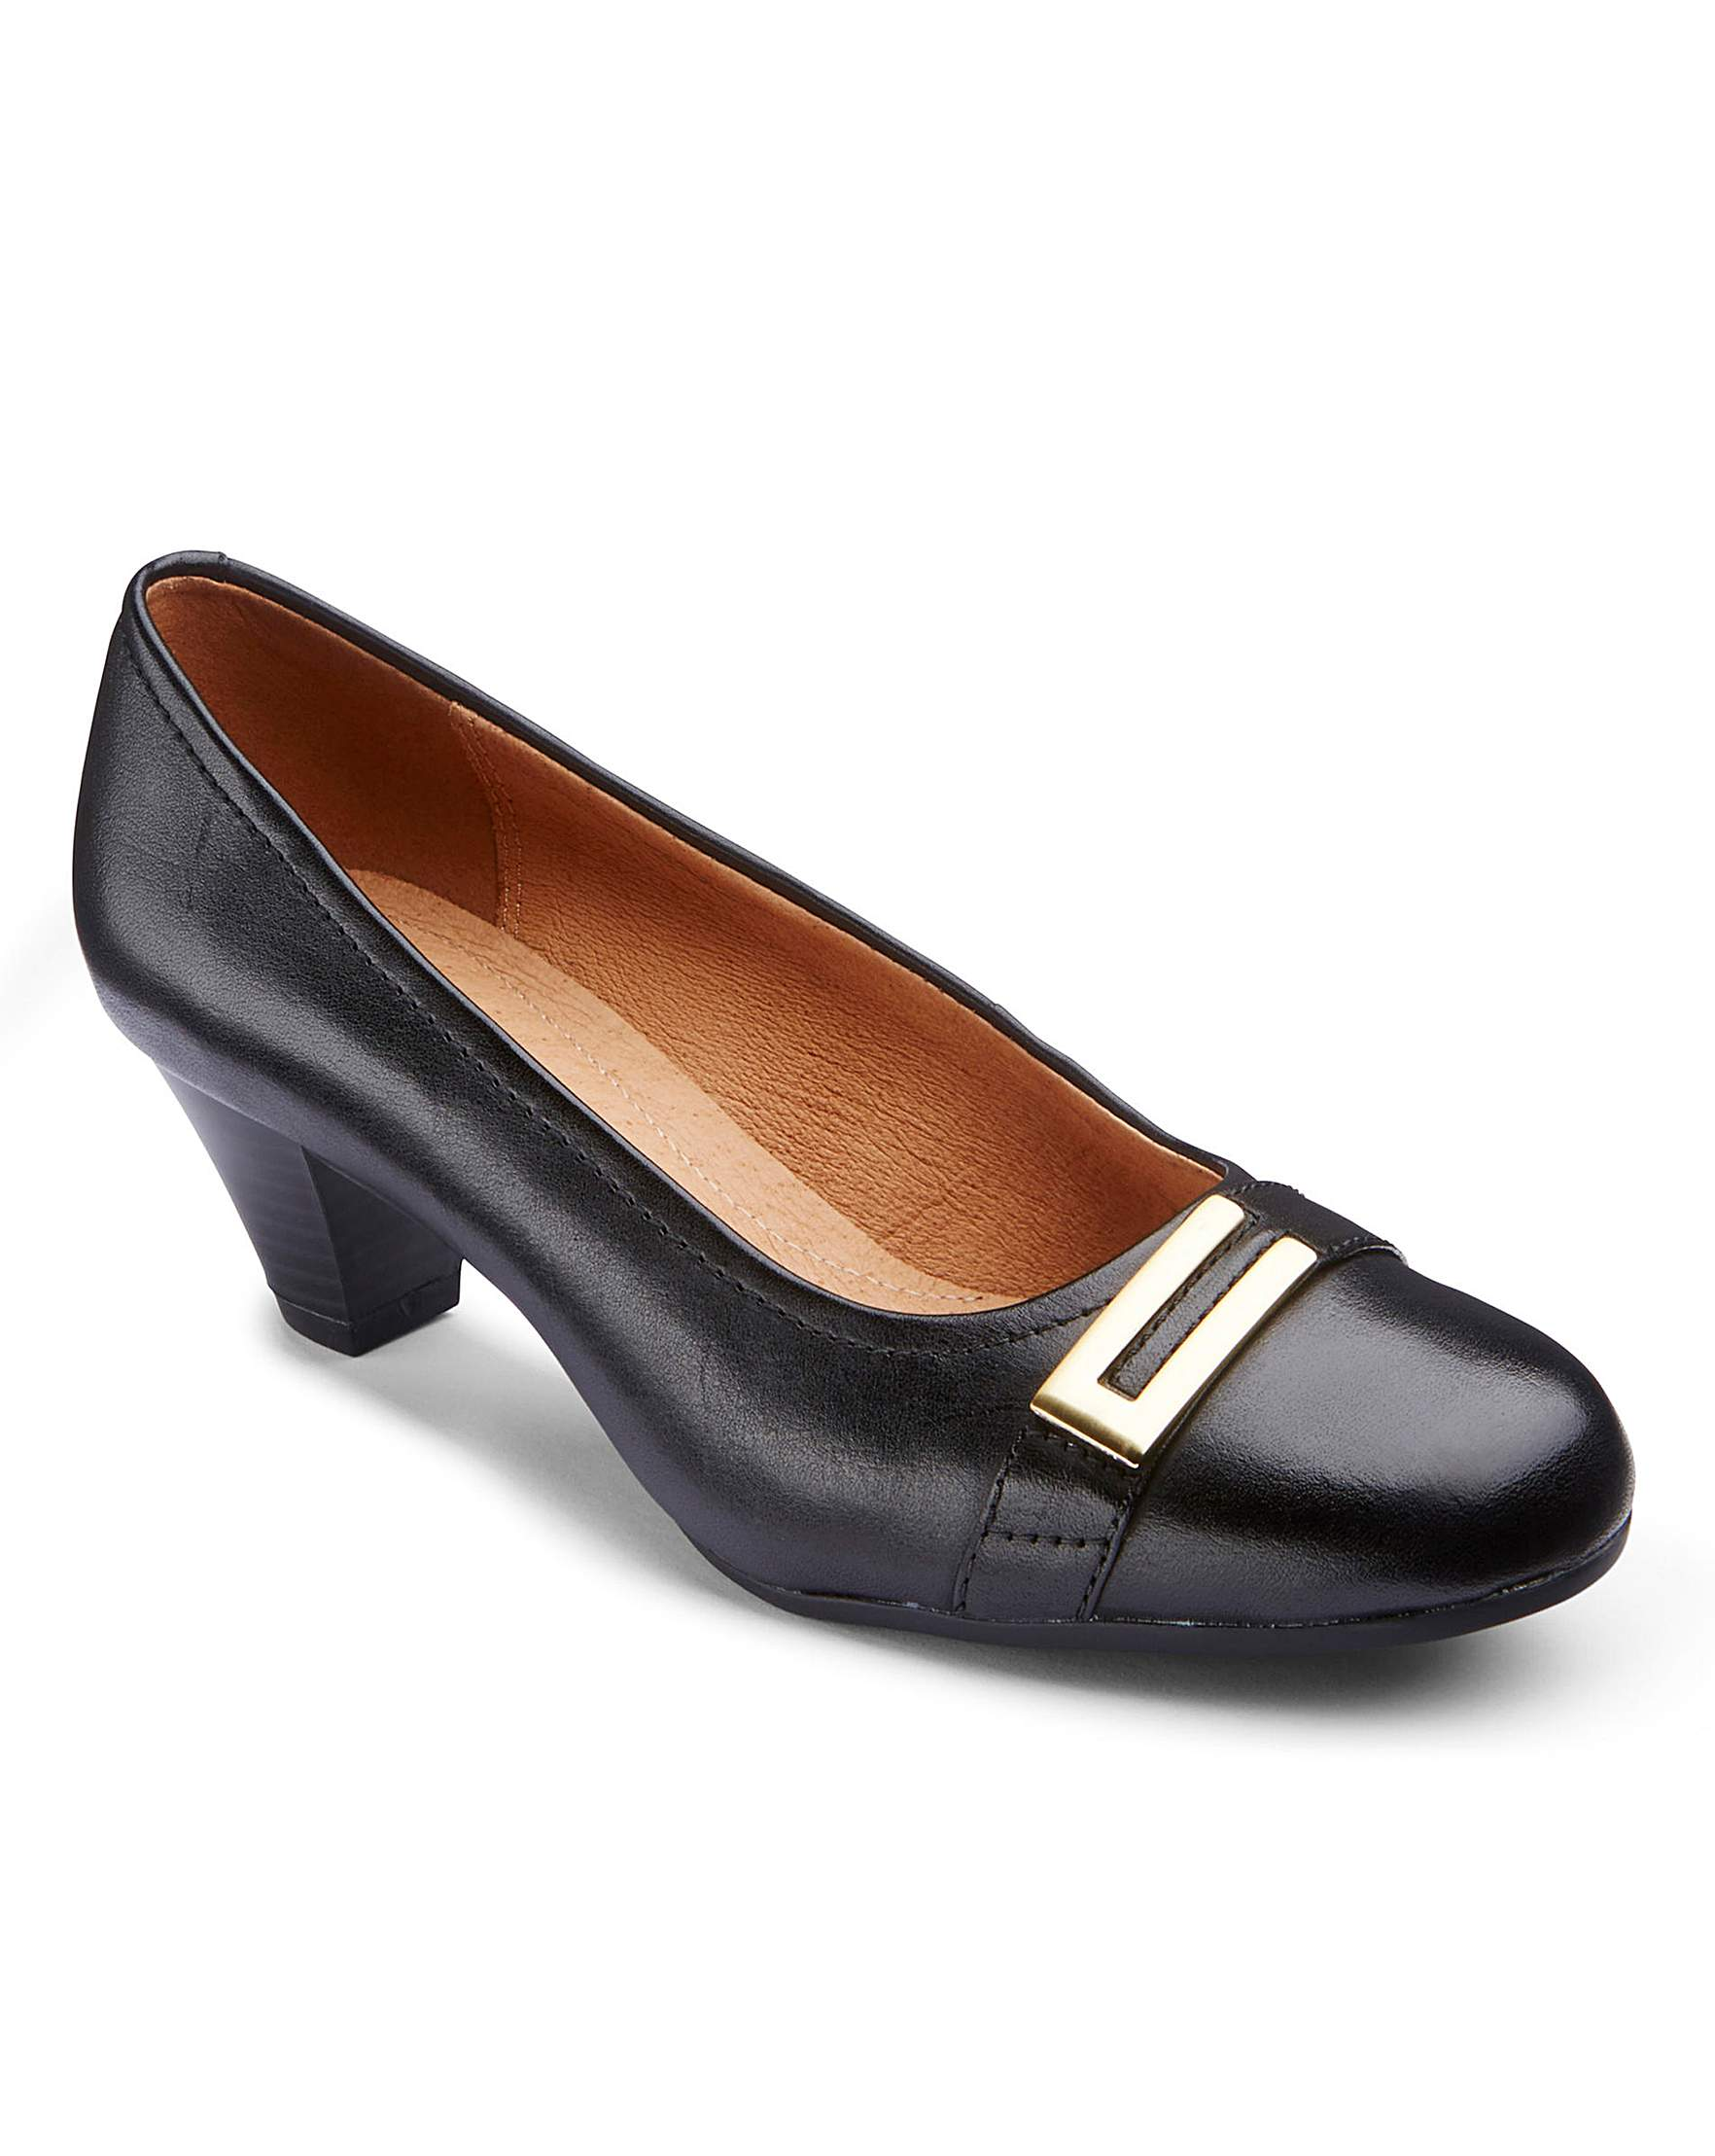 3c52a2d45f0 Clarks Fearne Shine Court Shoes with Trim Wide EE Fit